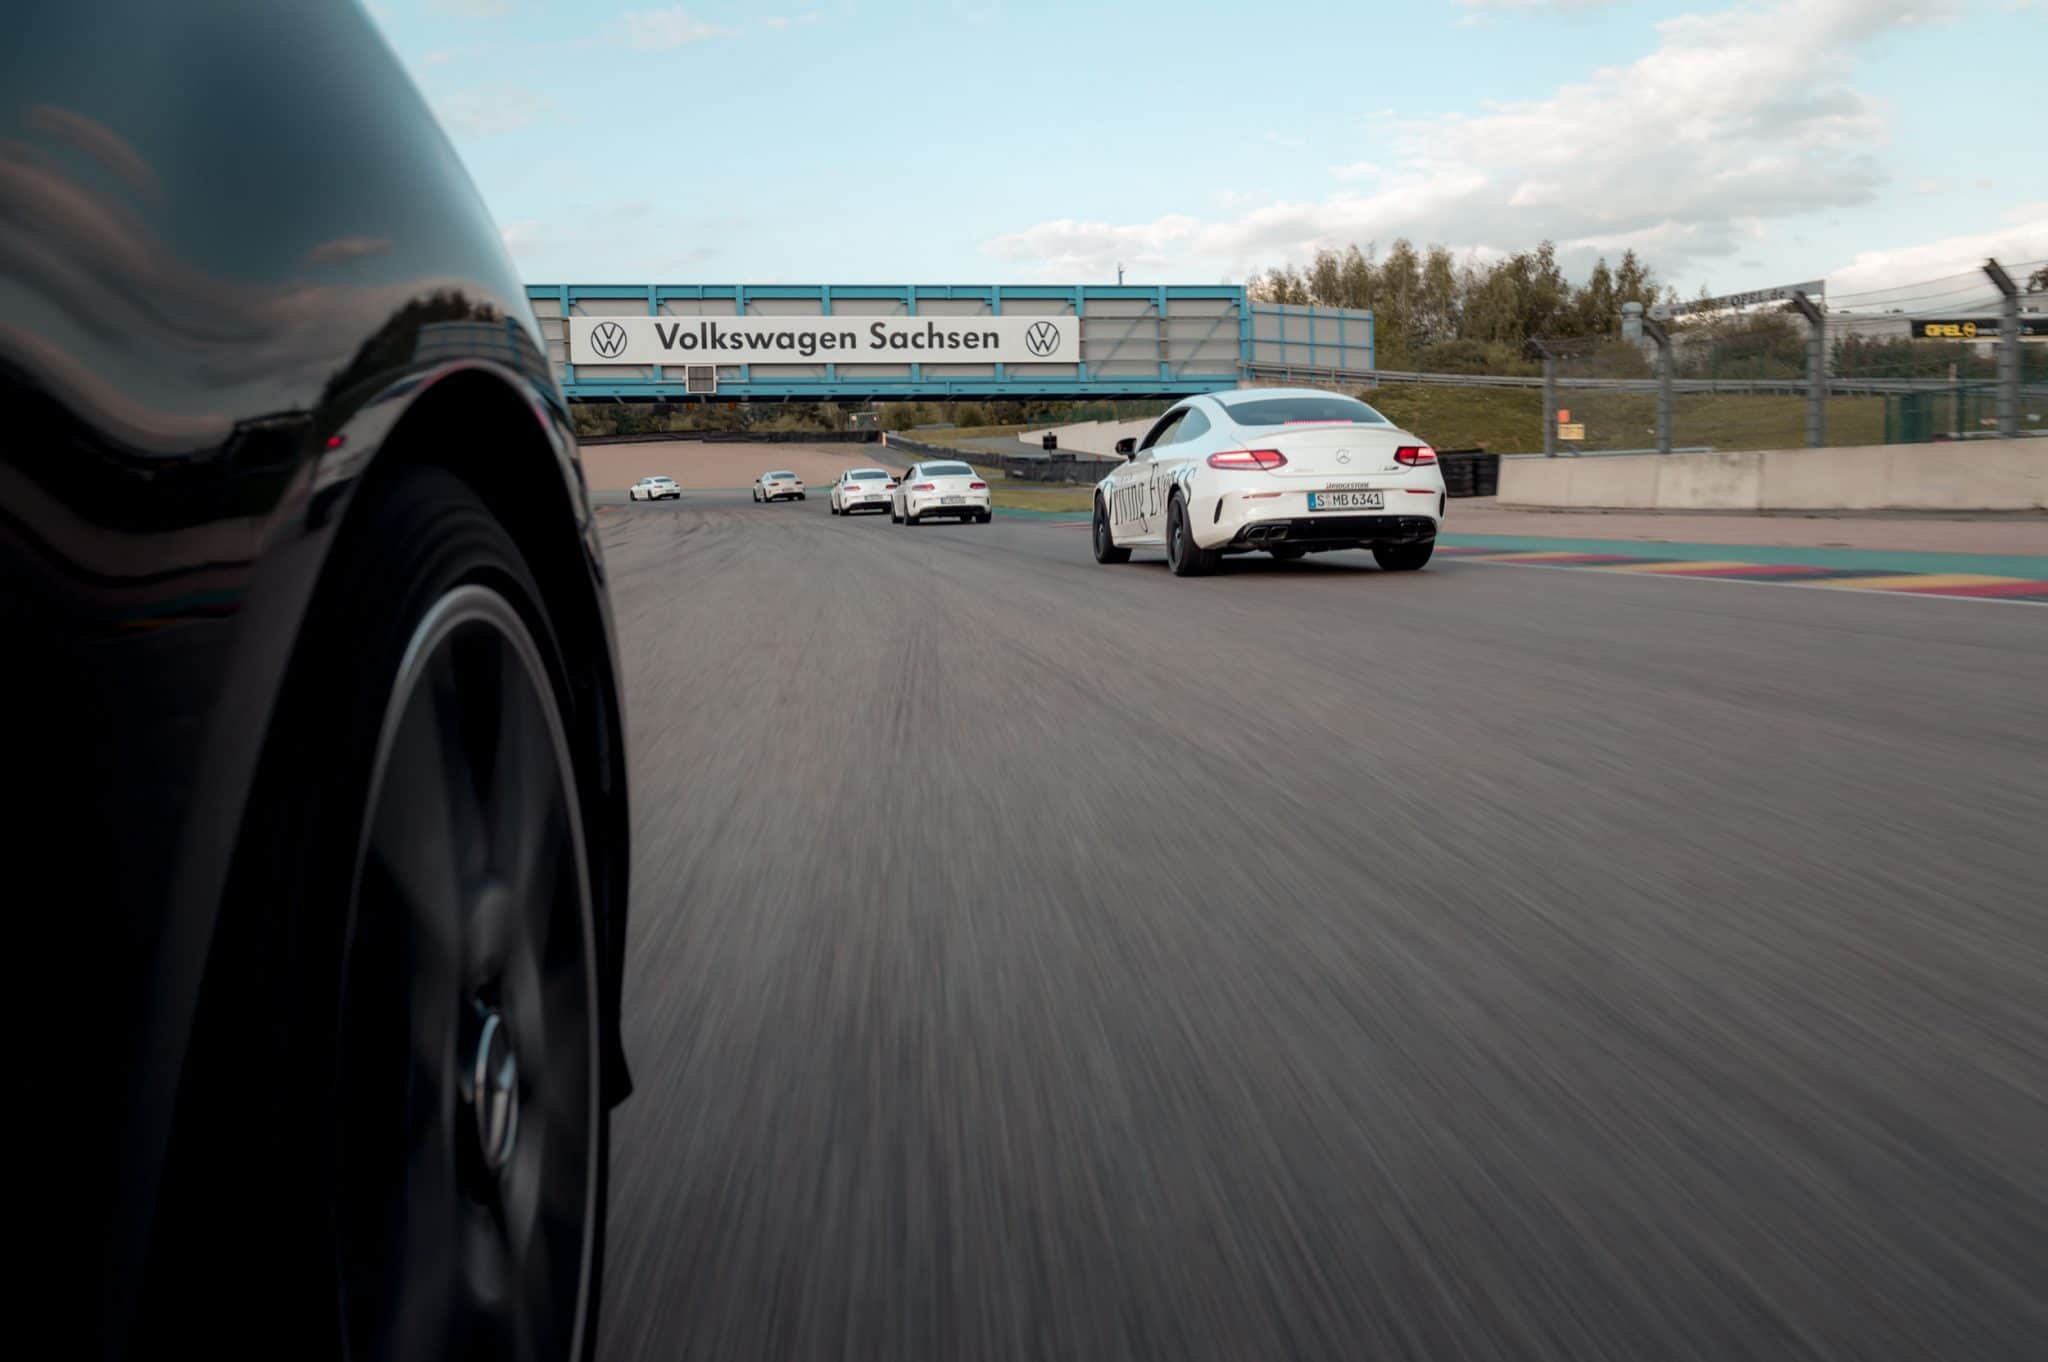 Mercedes Benz Driving Events Sachsenring 11. September 2020 710 scaled |